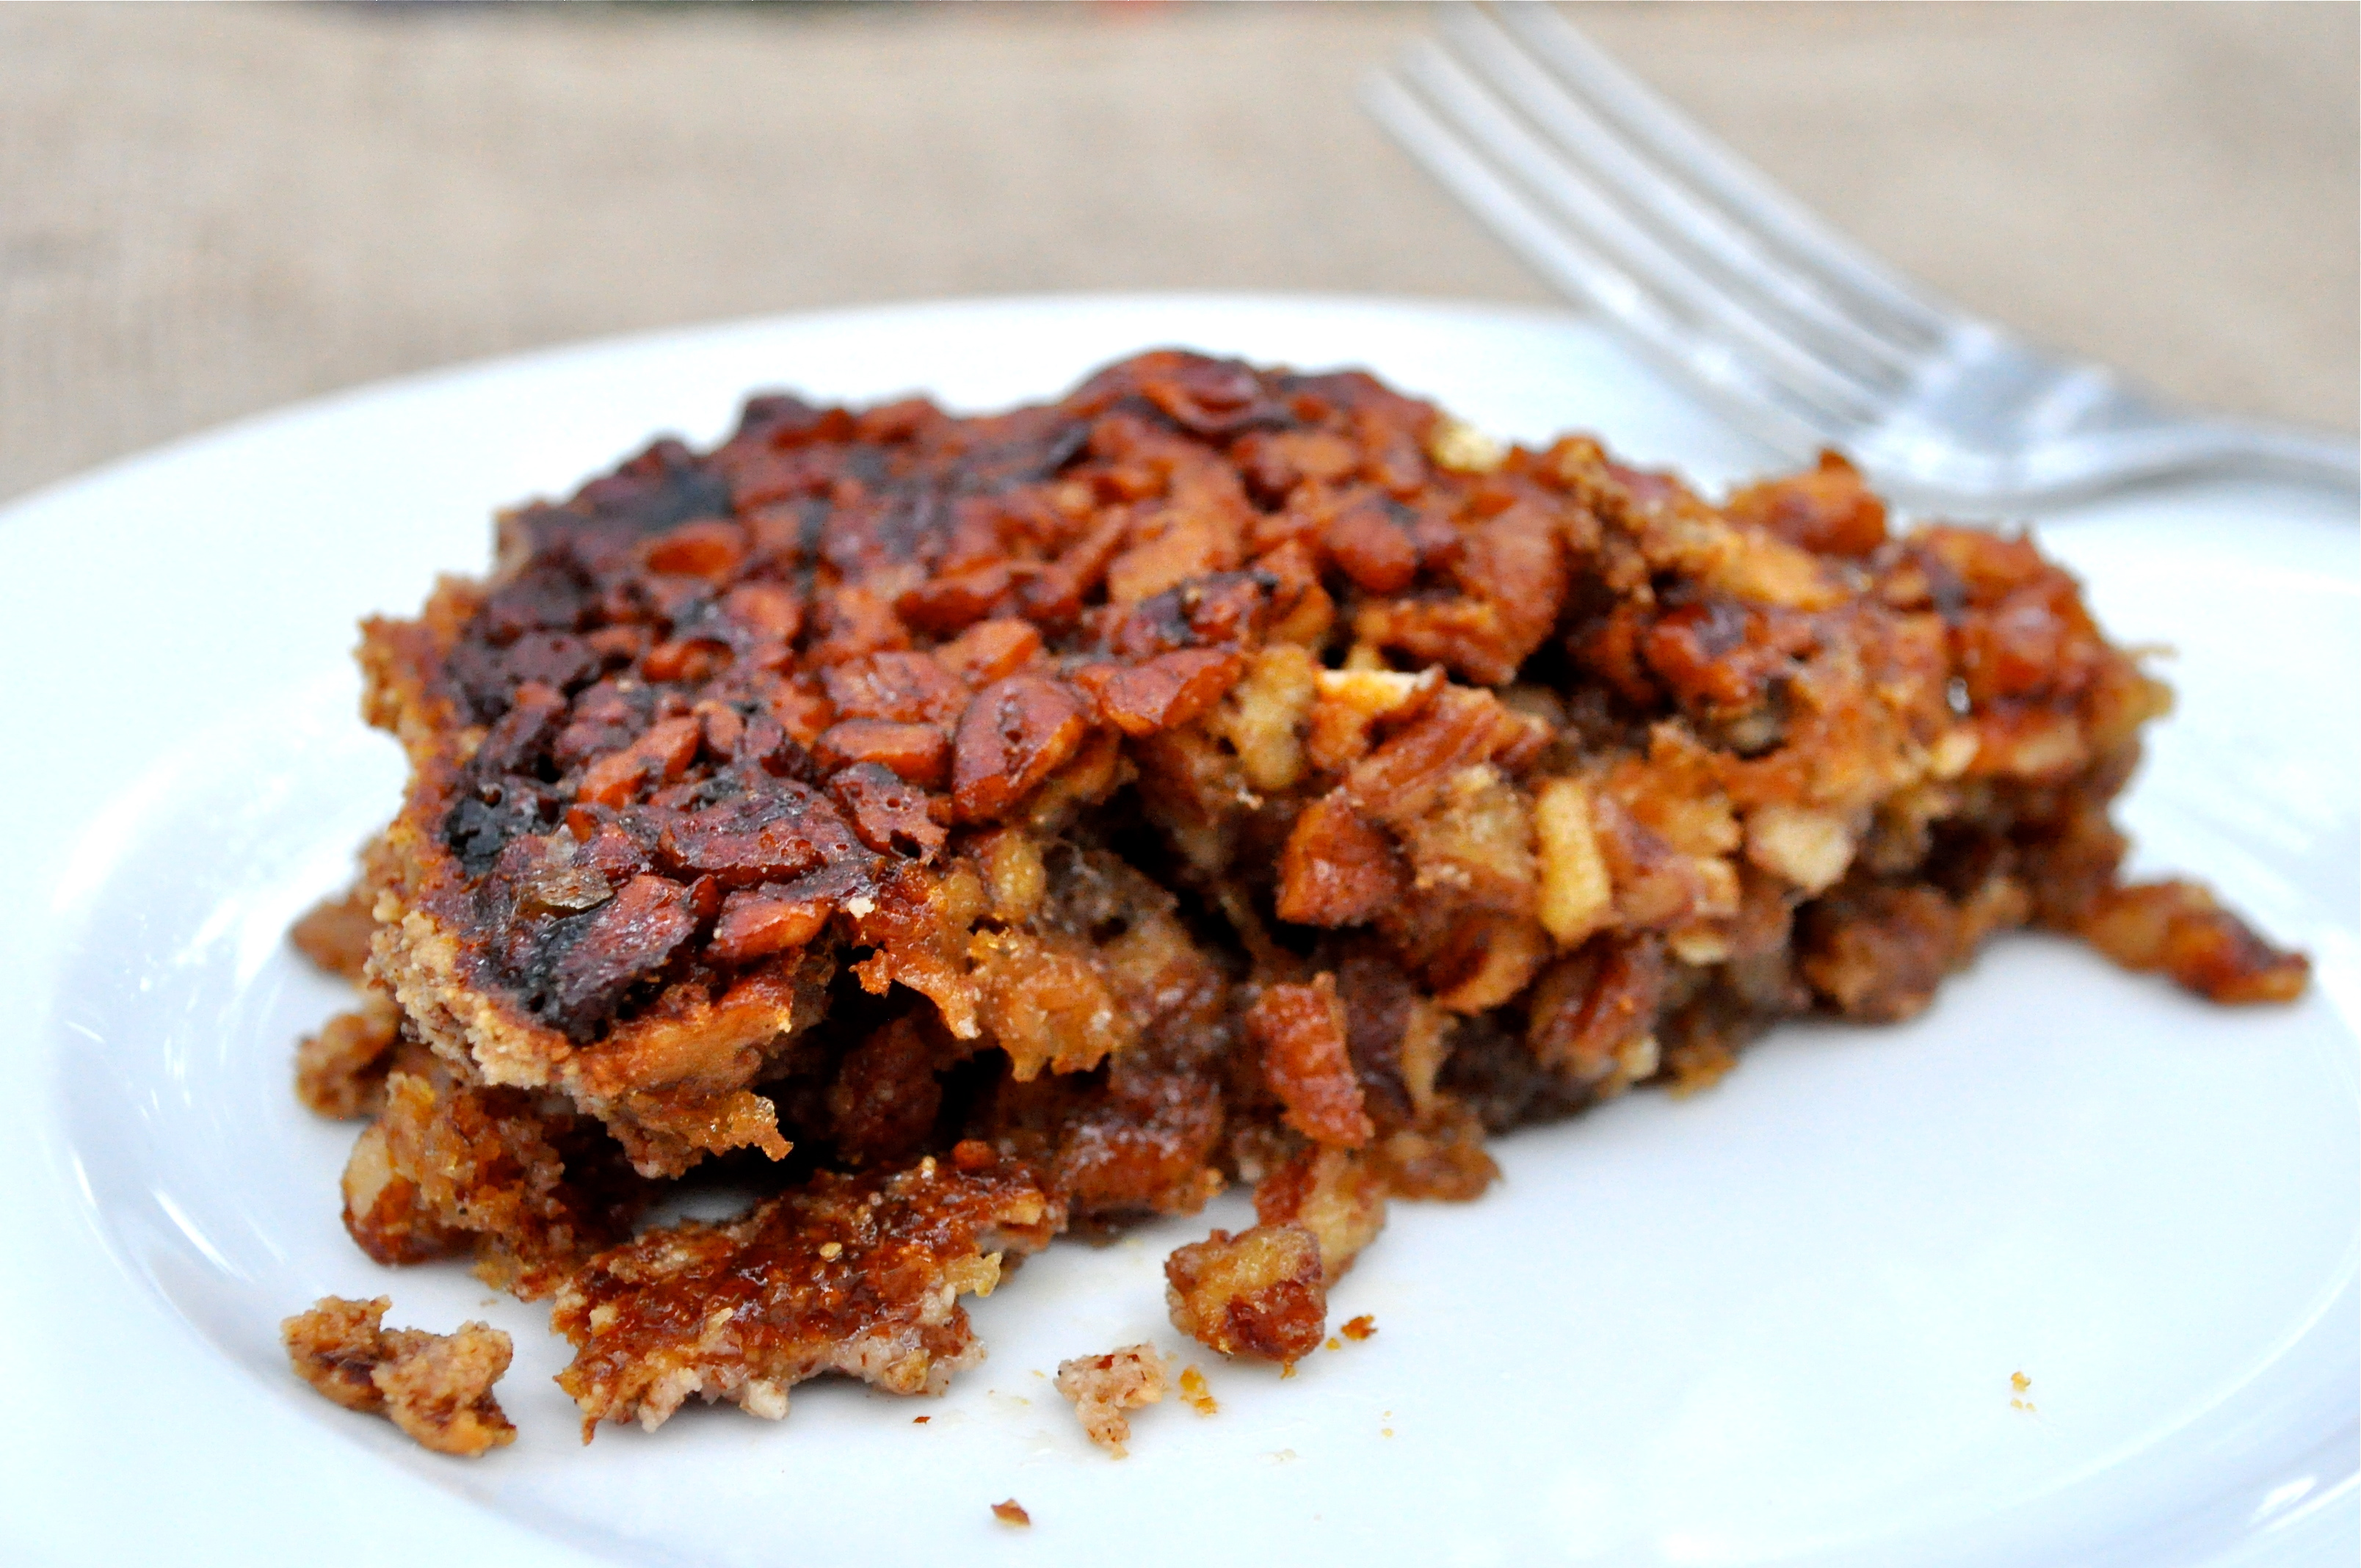 Fed & FitPaleo Pecan Pie - Fed & Fit